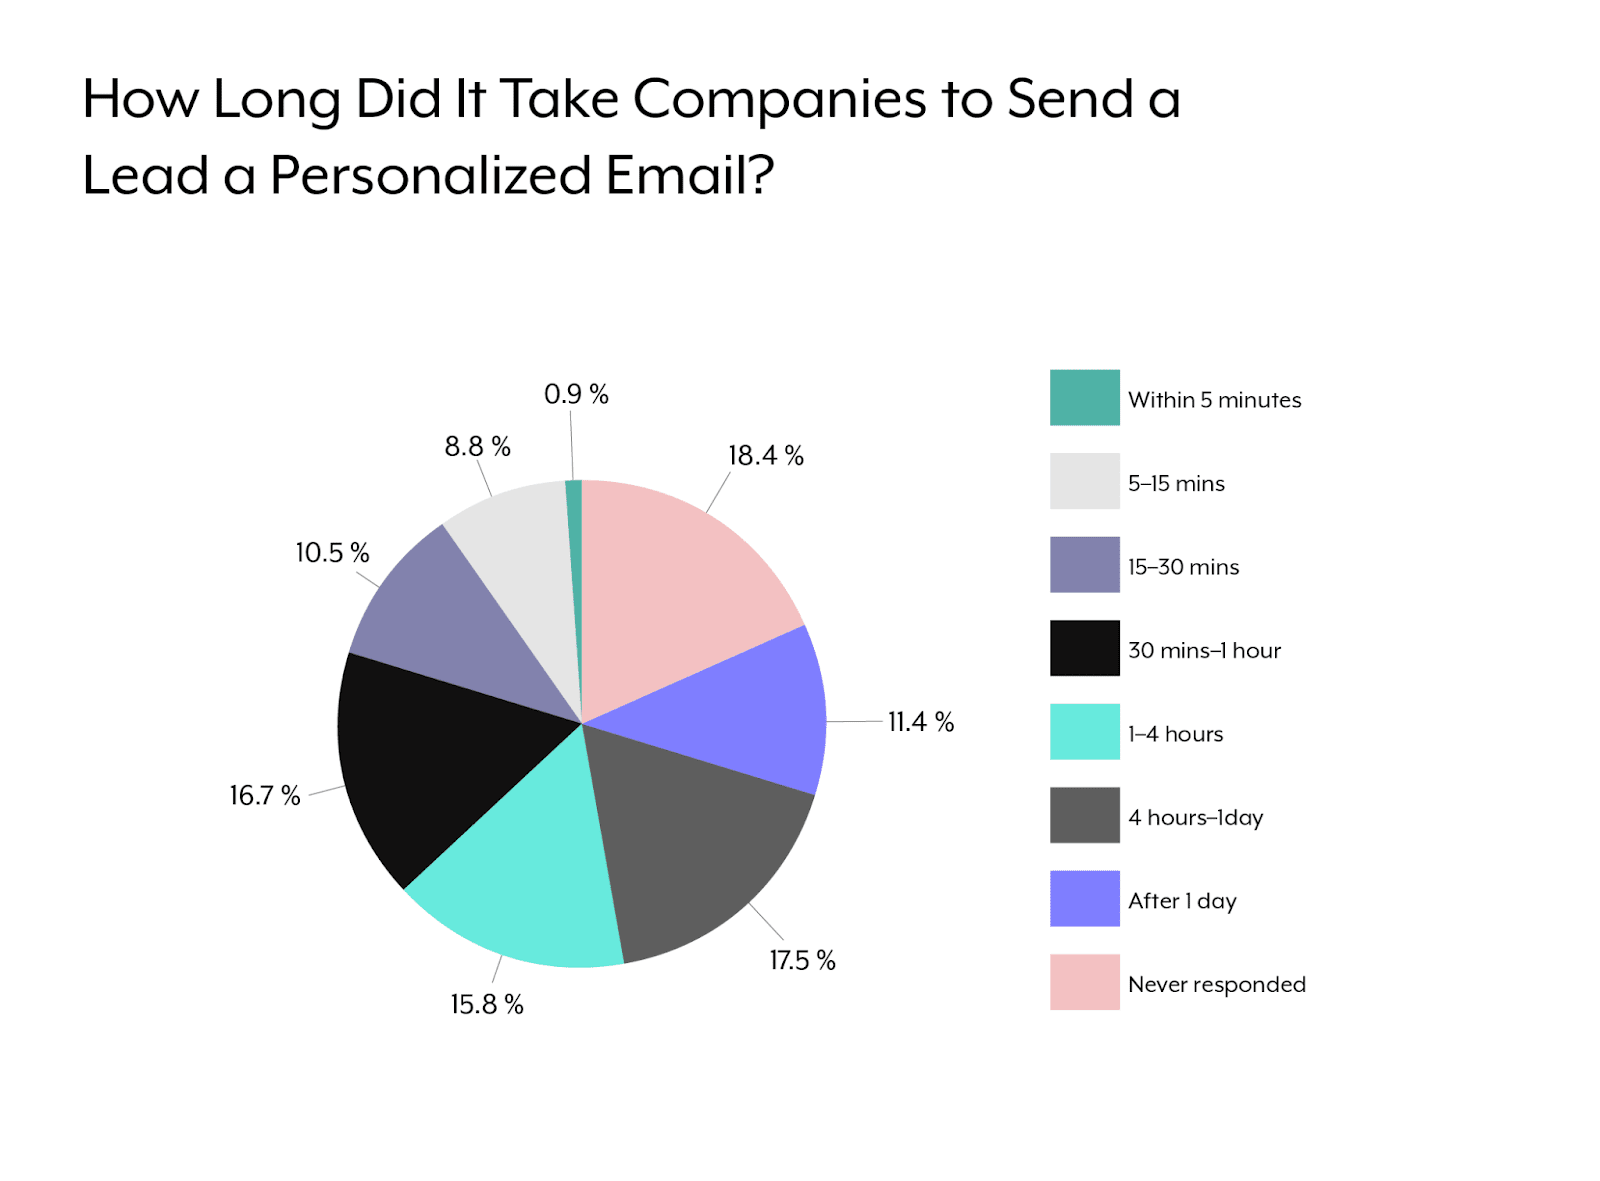 A pie chart that breaks down how long it took companies to respond to an inbound lead.